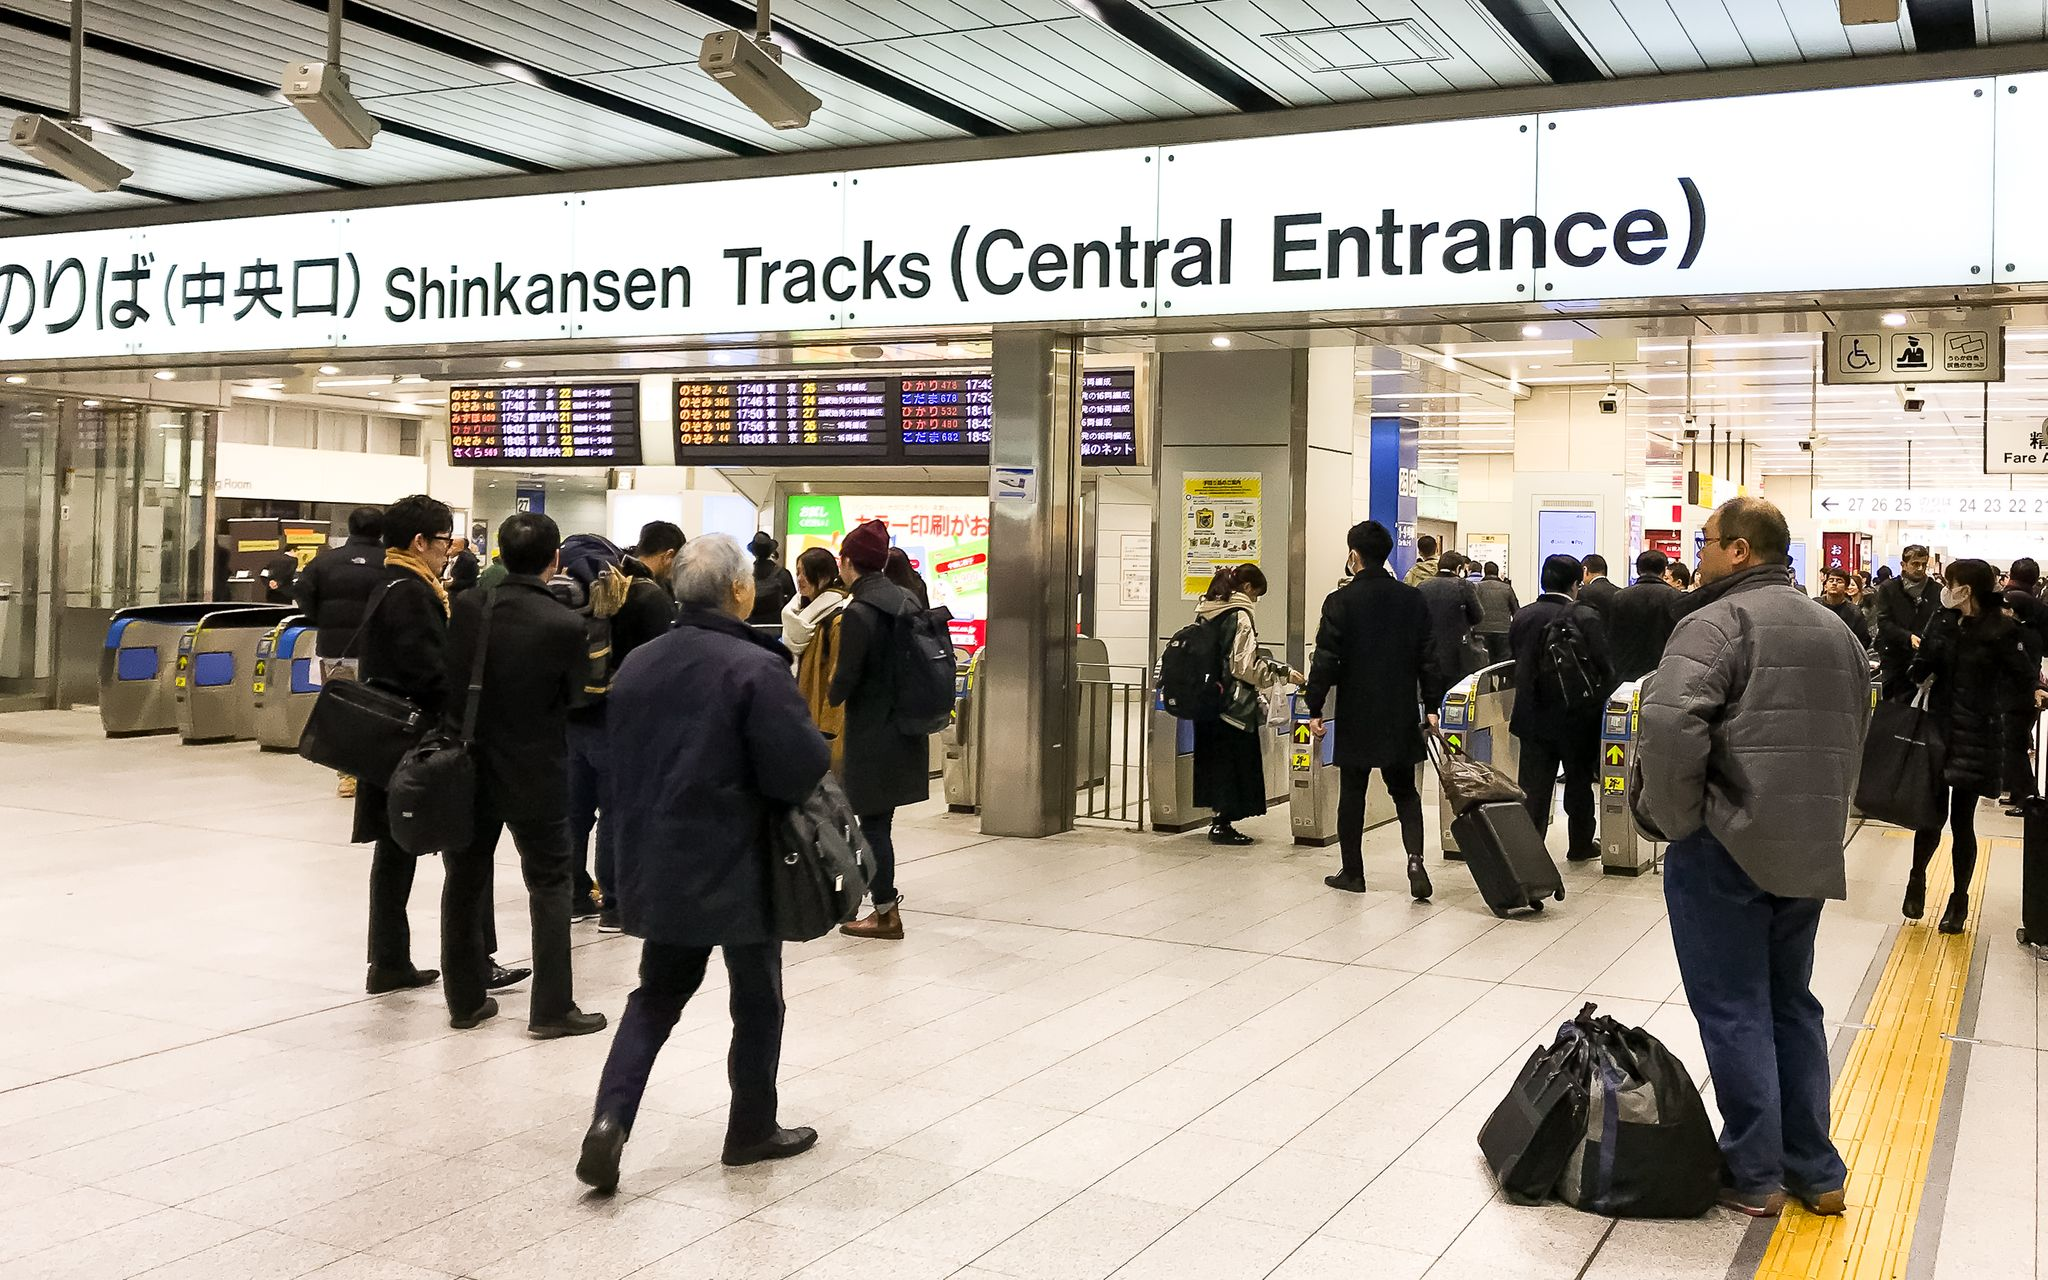 entry gates to the Shinkansen tracks